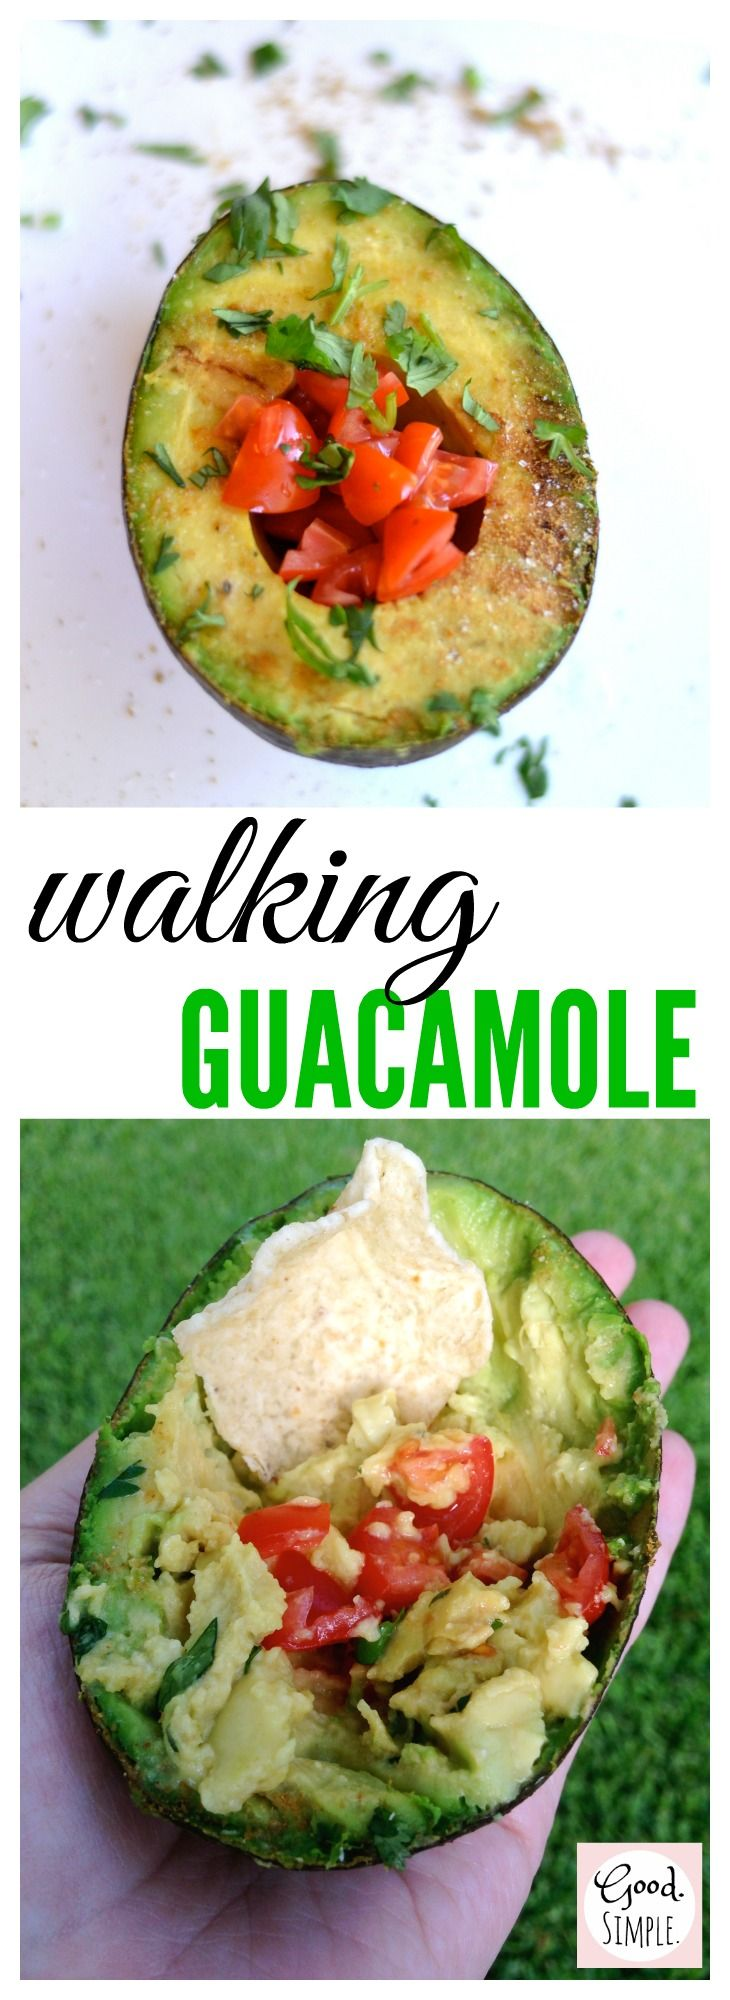 Grill avocados and top with guacamole ingredients for a fun BBQ or cookout side dish or appetizer. #grilling #BBQ